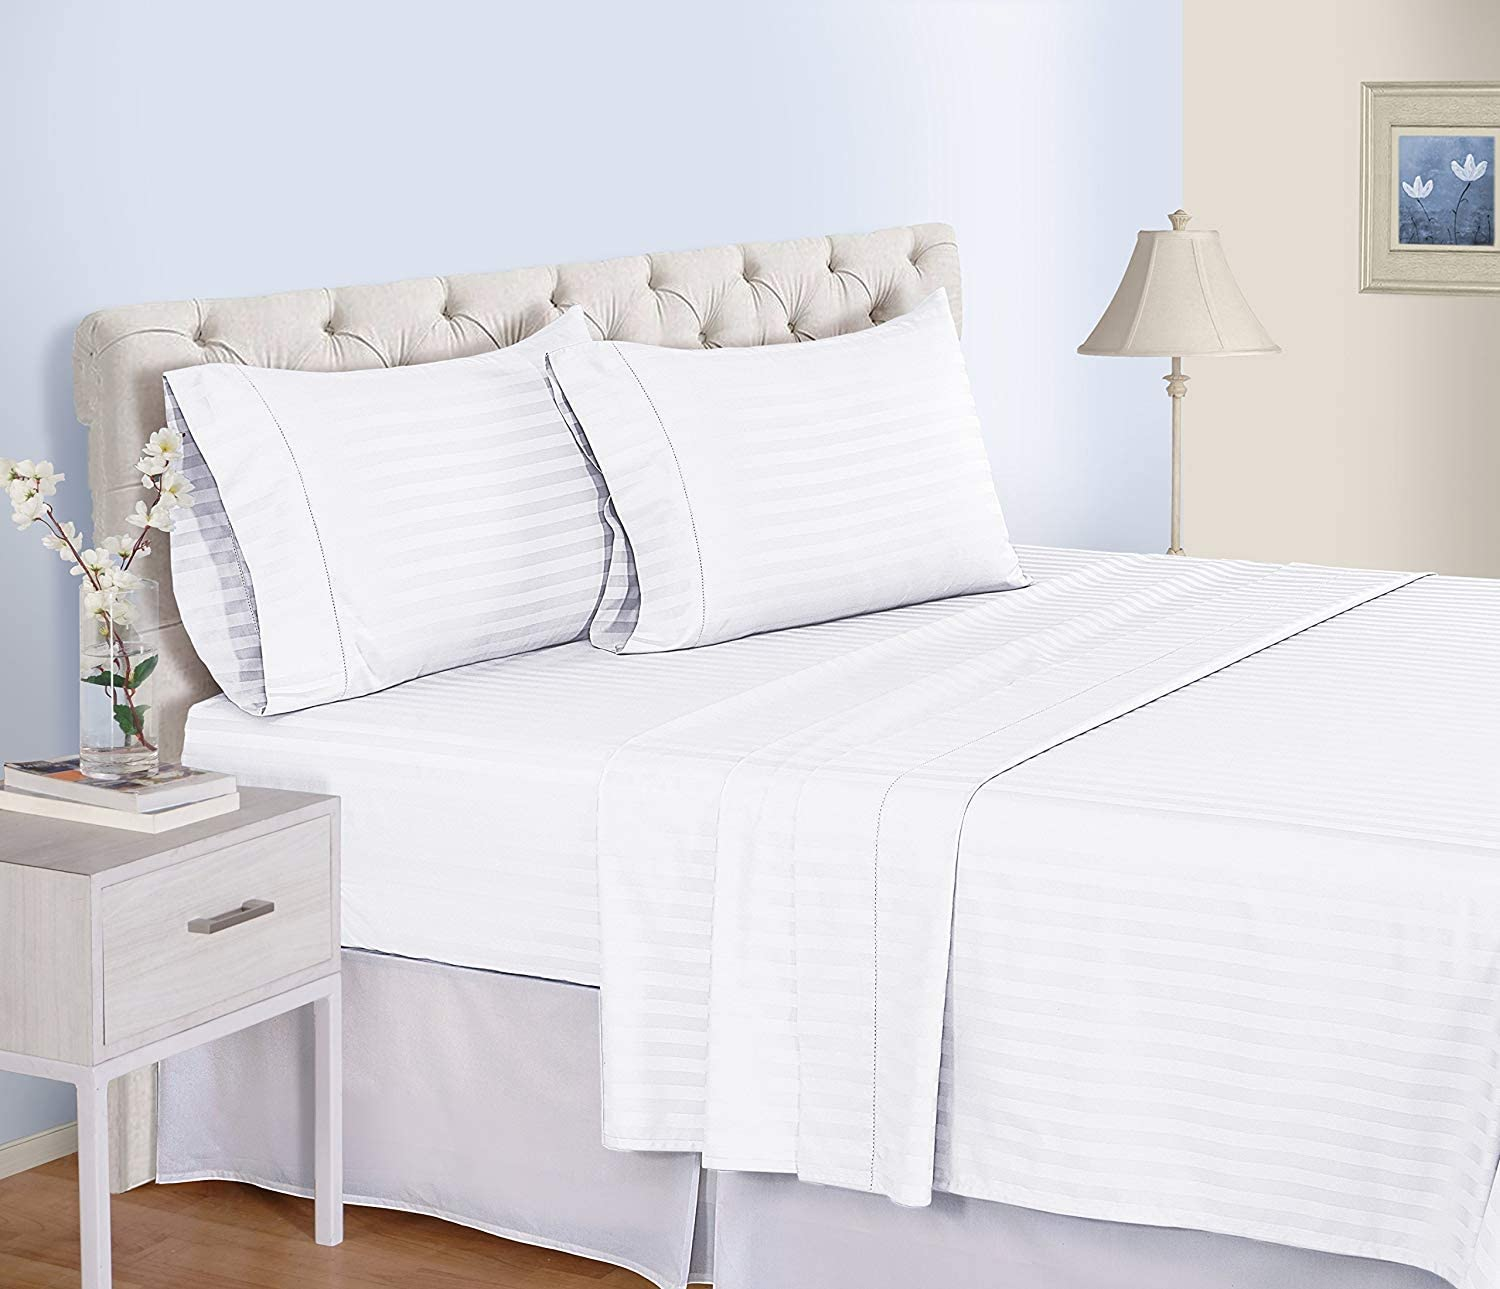 Luxury Percale Cot Bed Fitted Sheets Available in 21 Colours Two Mint Green Pack of 2